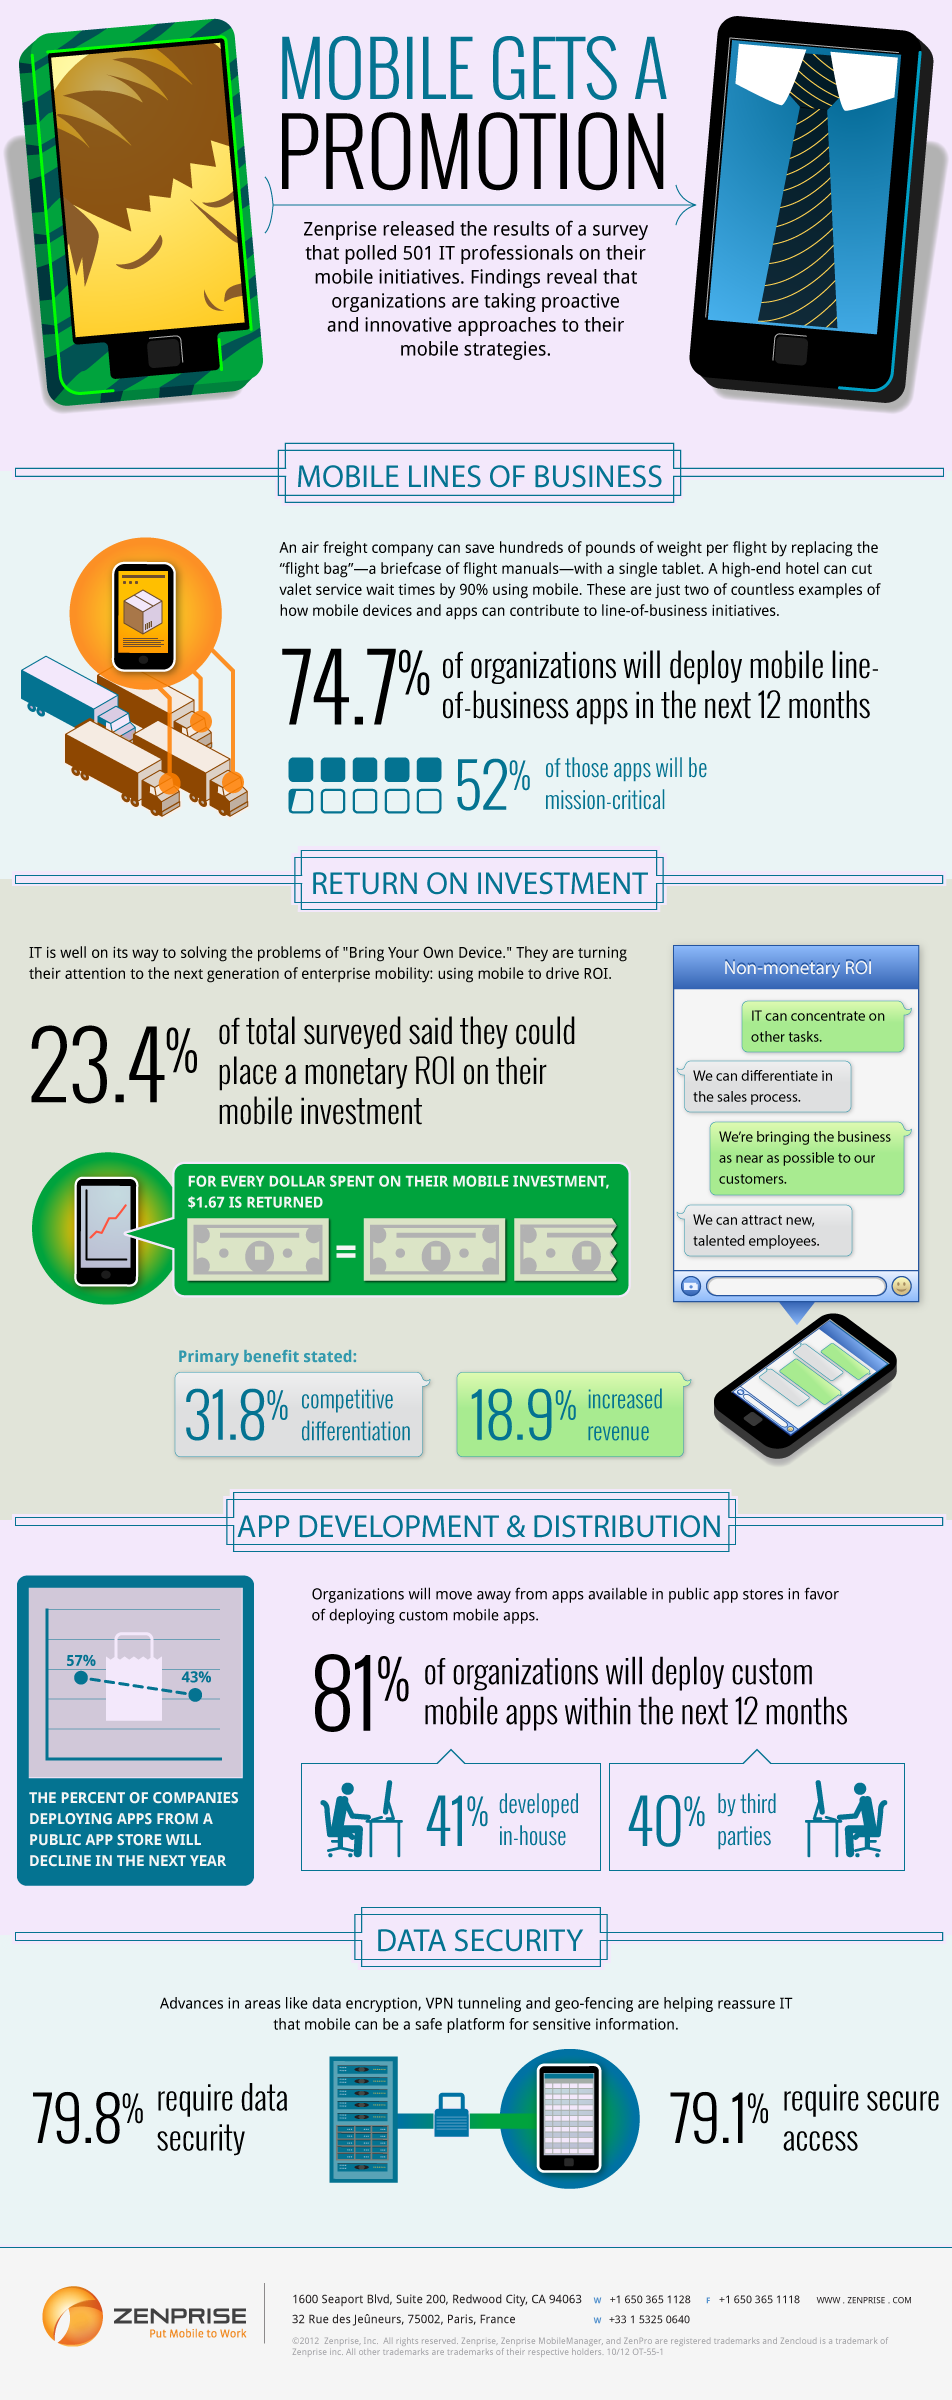 Zenprise Survey Shows Organizations Getting Series About Mobile Business Initiatives